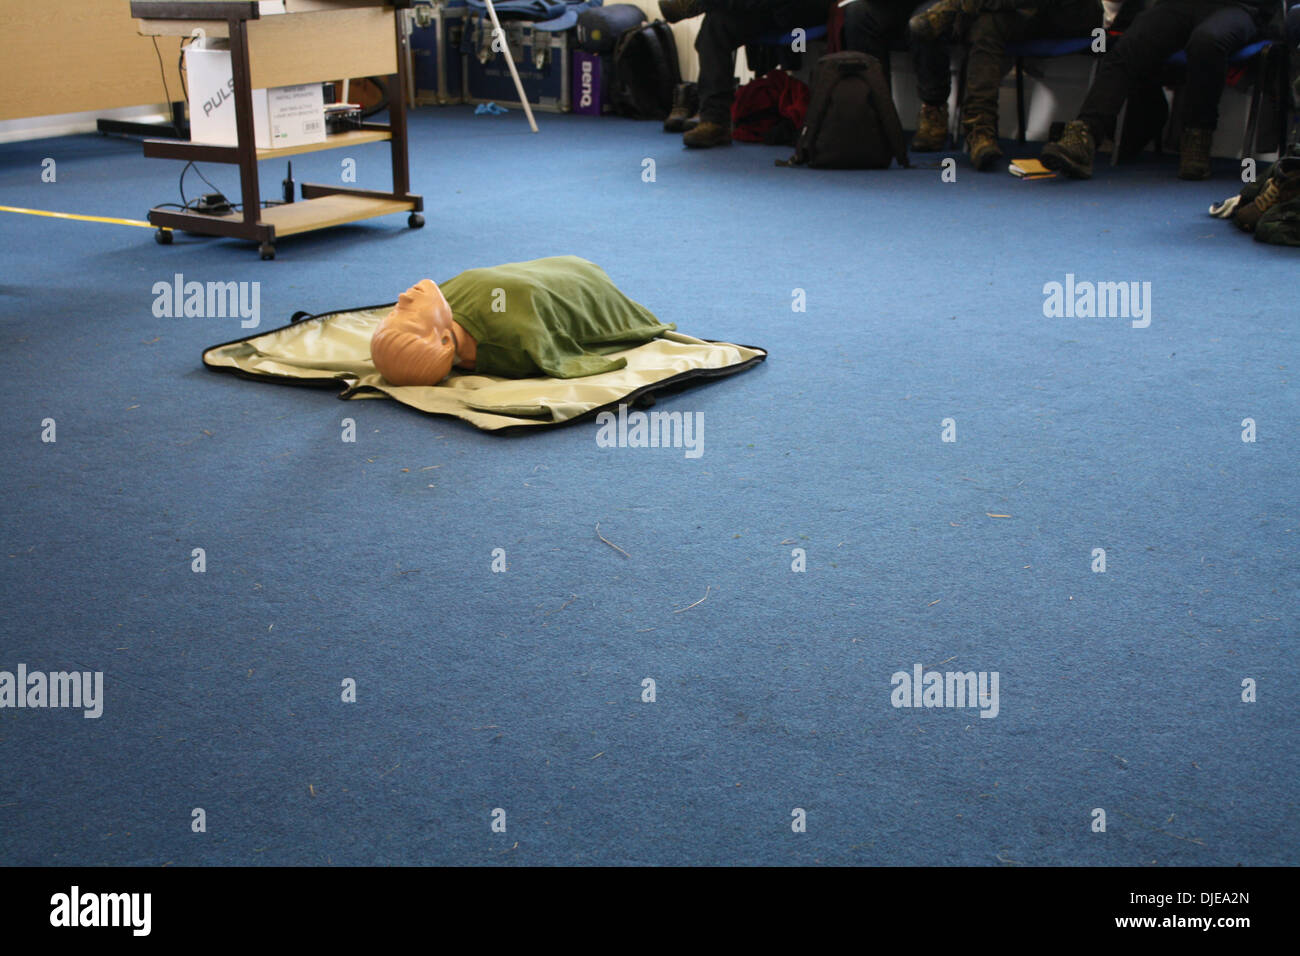 First aid course cpr training stock photo royalty free image first aid course cpr training xflitez Gallery